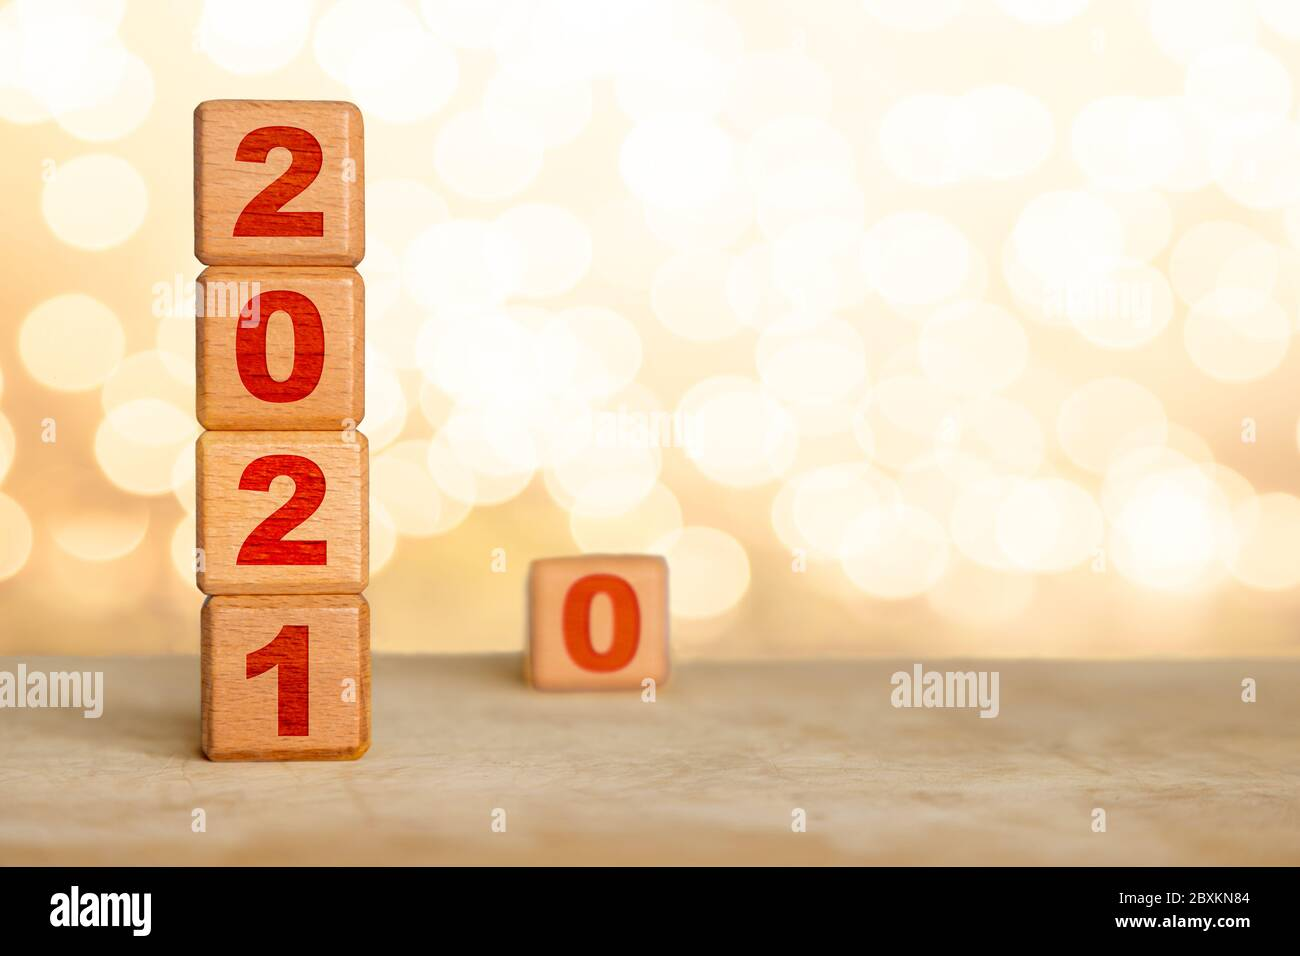 Forgotten Christmas 2020 Happy New Year 2021 with wood cube blocks and leaving the Year